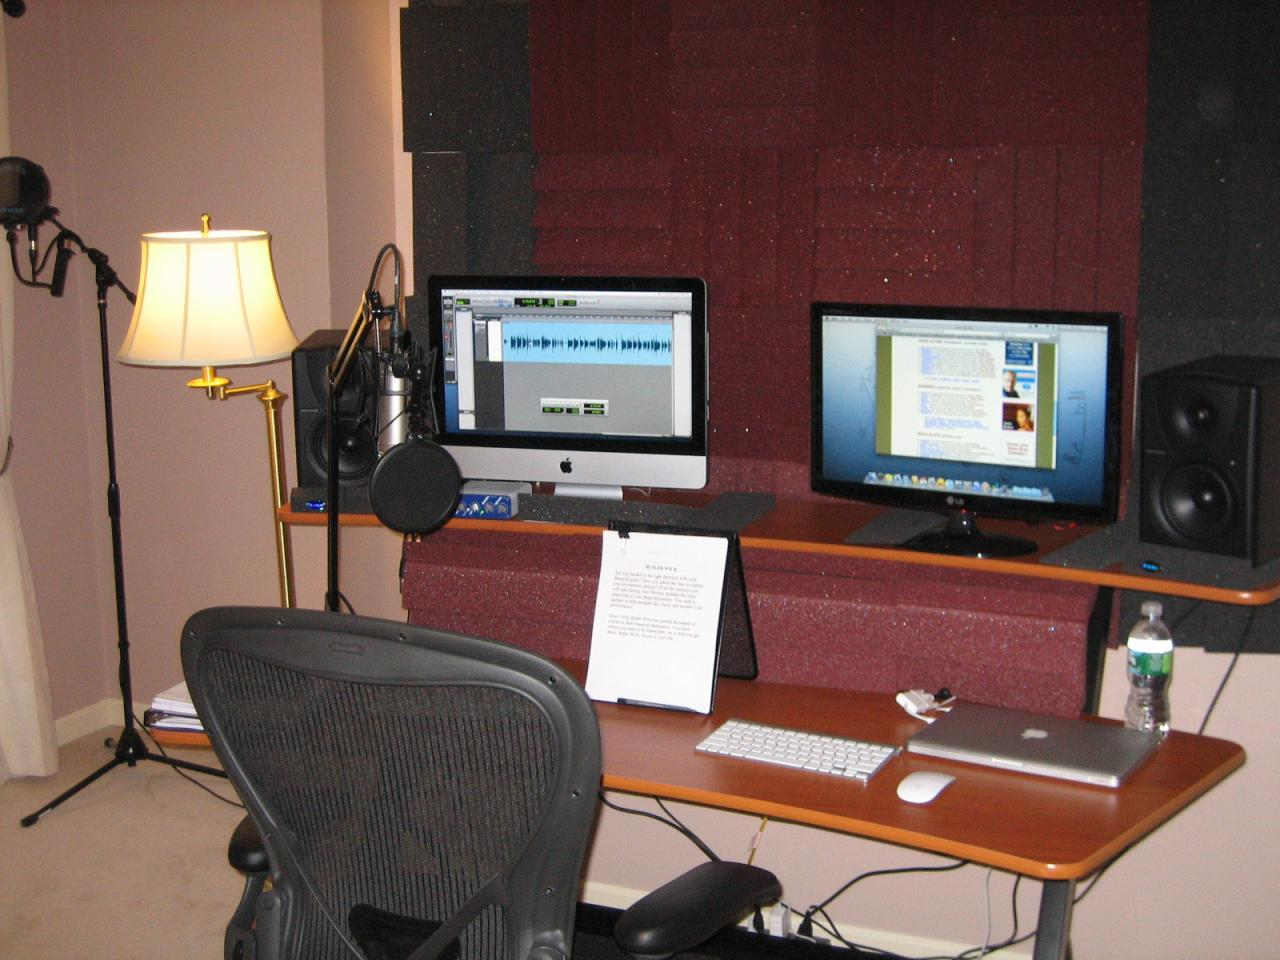 Promote Your Website with a Professional U.S.A. Voice-Over in 24 hours